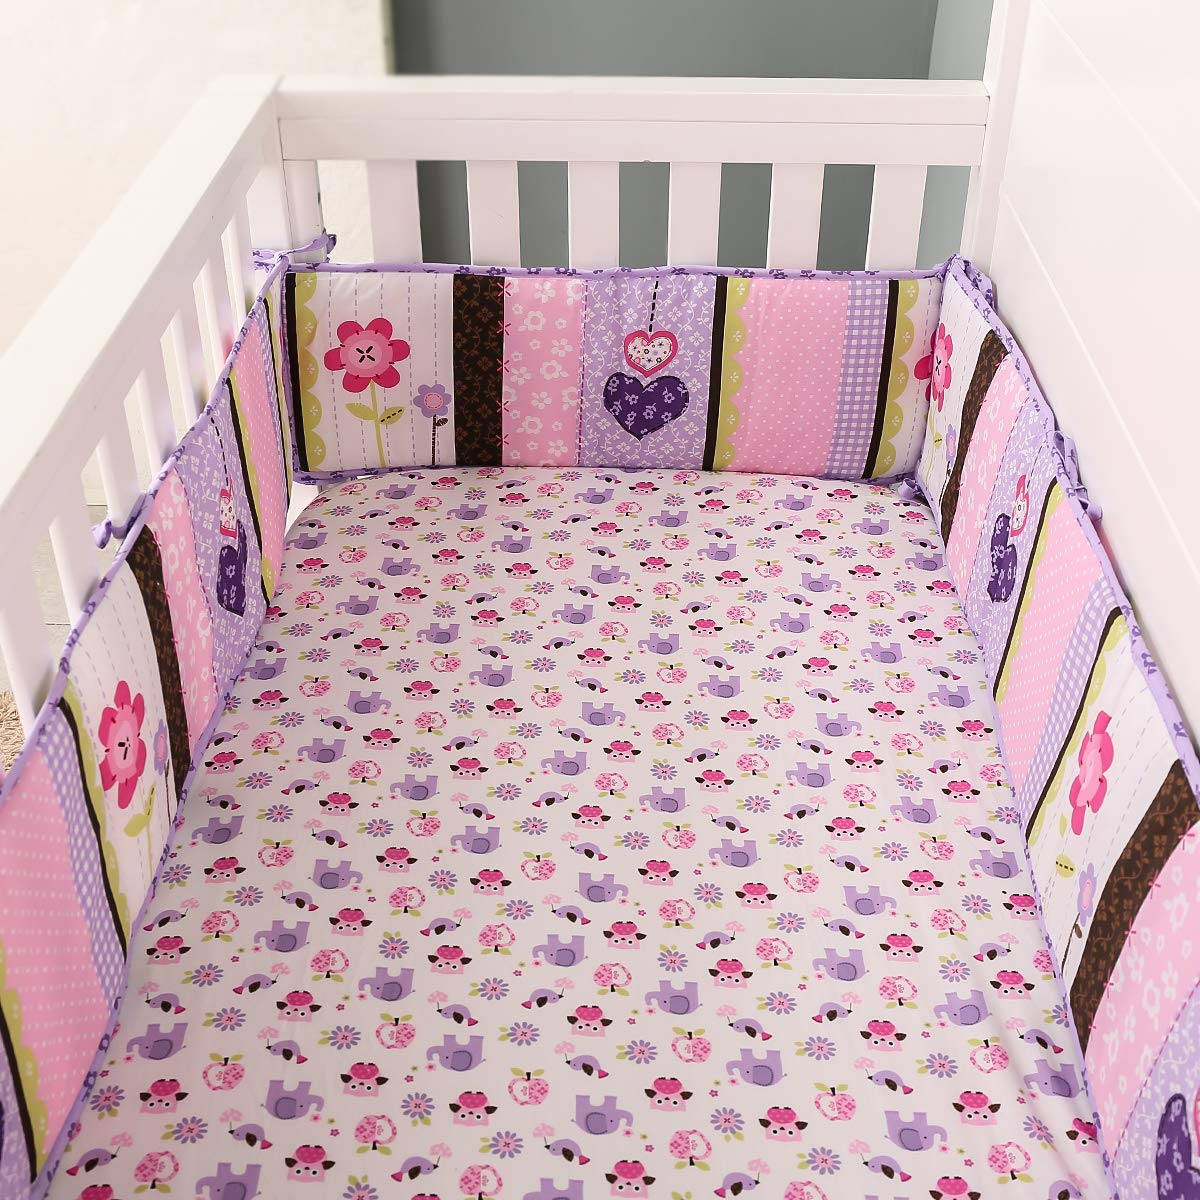 Heseam Baby Boy//Girl 4-Piece Breathable Mesh Cloth Crib Liner Protector Bumper Pad for Baby Crib Deluxe Crib Safety Guard Pad with Thick Padding,Nursery Bed Essential for Boys Elephant Purple